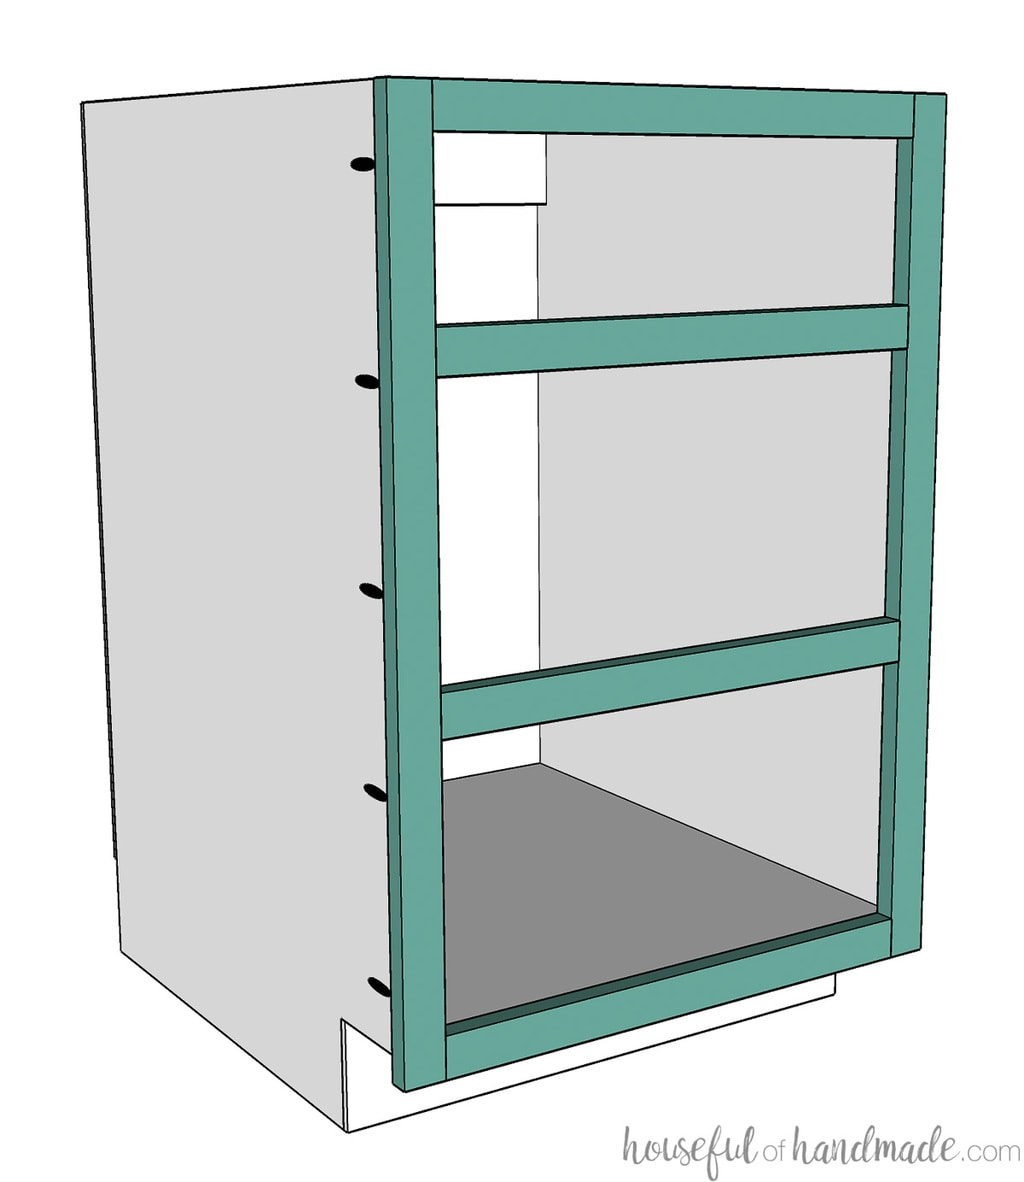 3D sketch of the face frame drawer base cabinet with the face frame attached to the front.